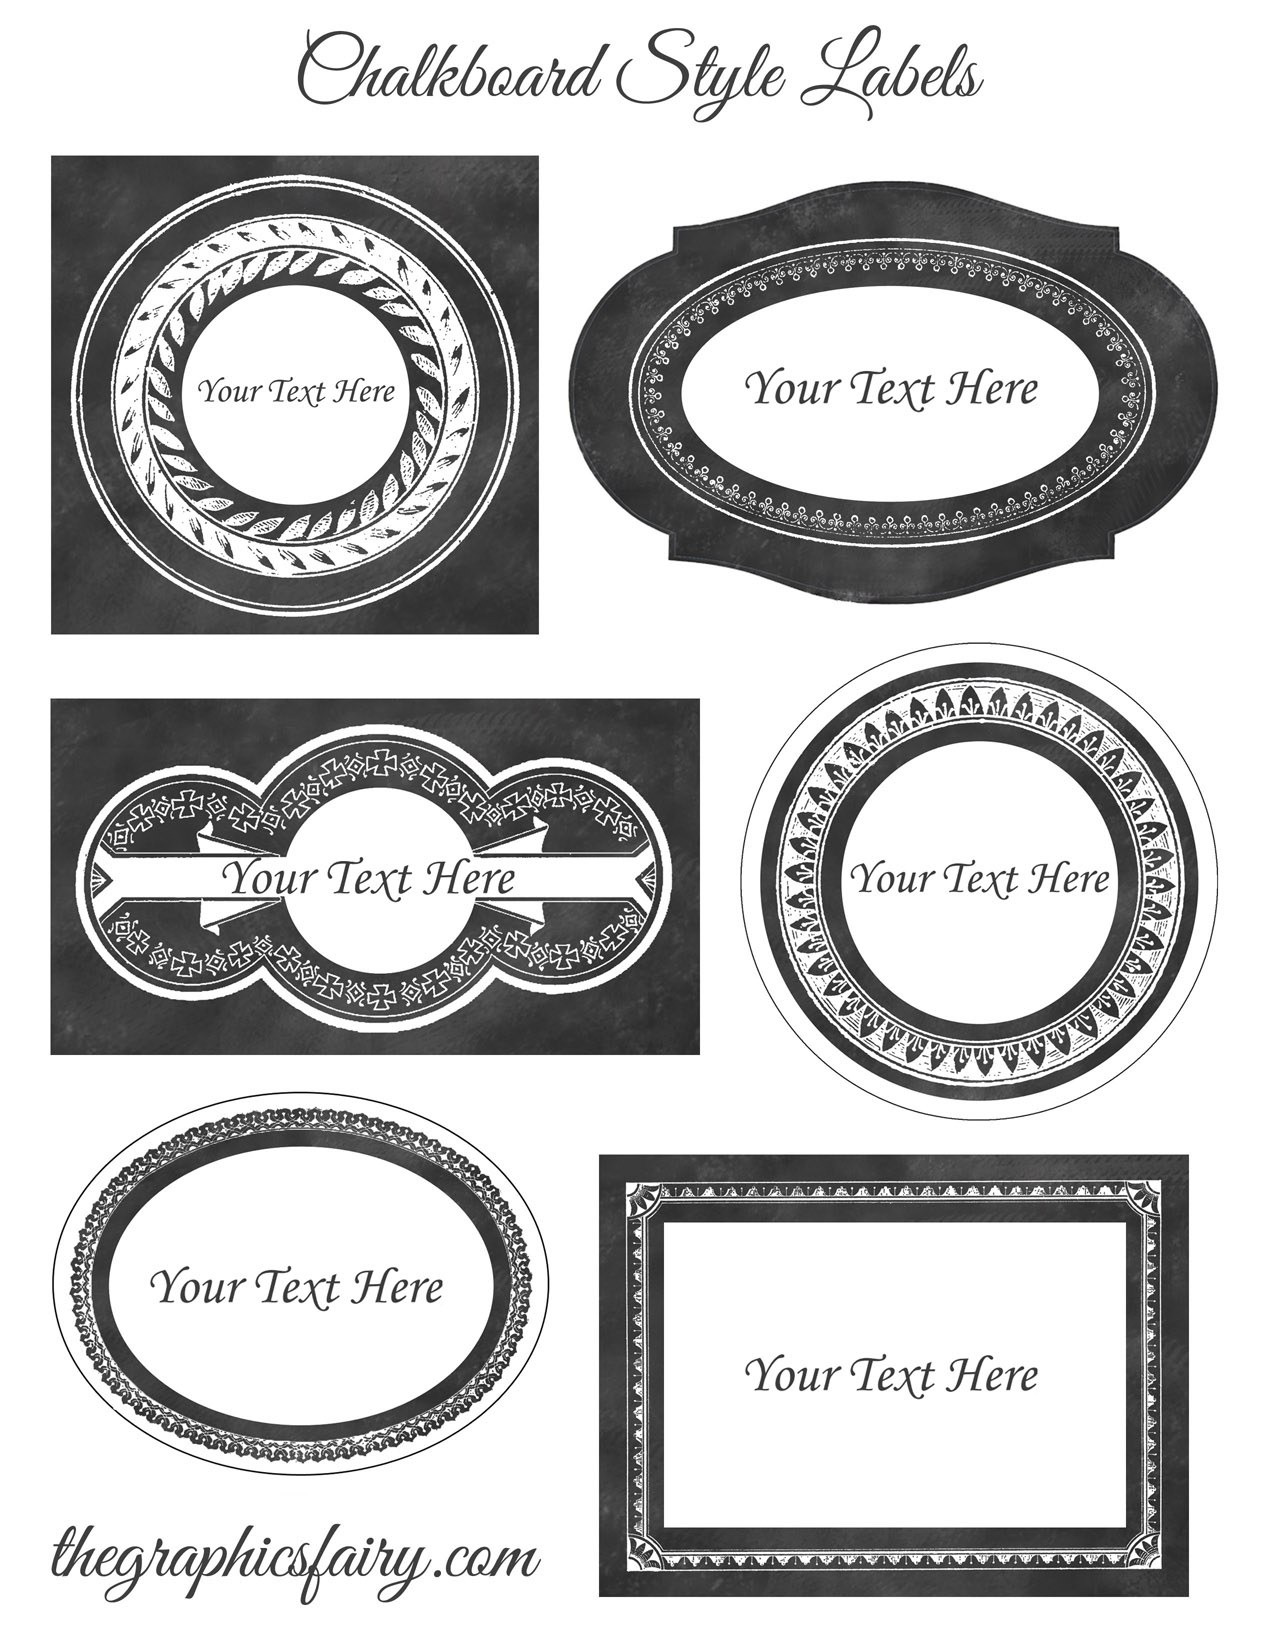 Chalkboard Style Printable Labels - Editable! - The Graphics Fairy - Free Printable Labels